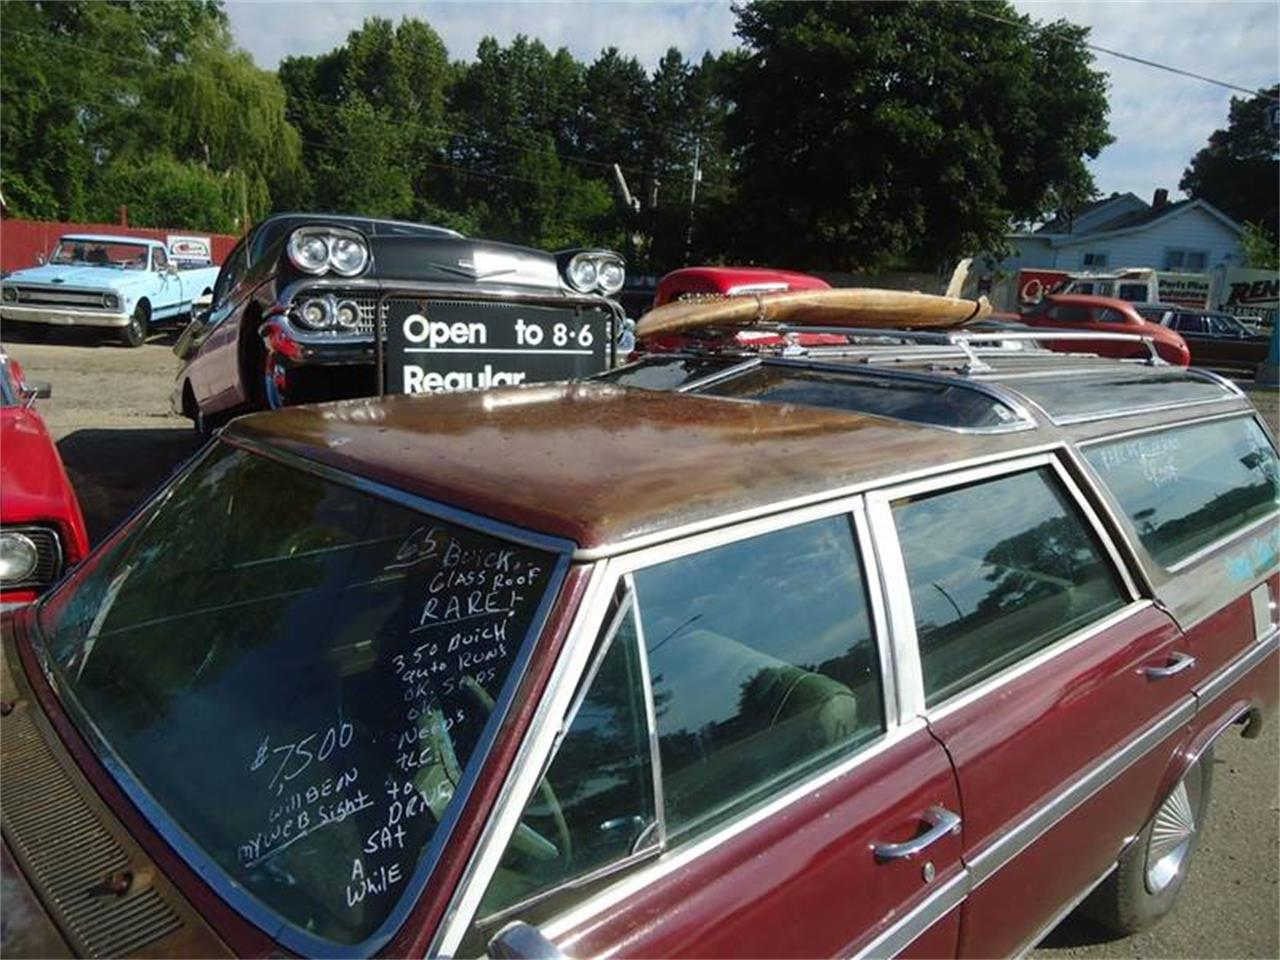 1965 sport wagon glass roof buick for sale in Jackson, MI – photo 11